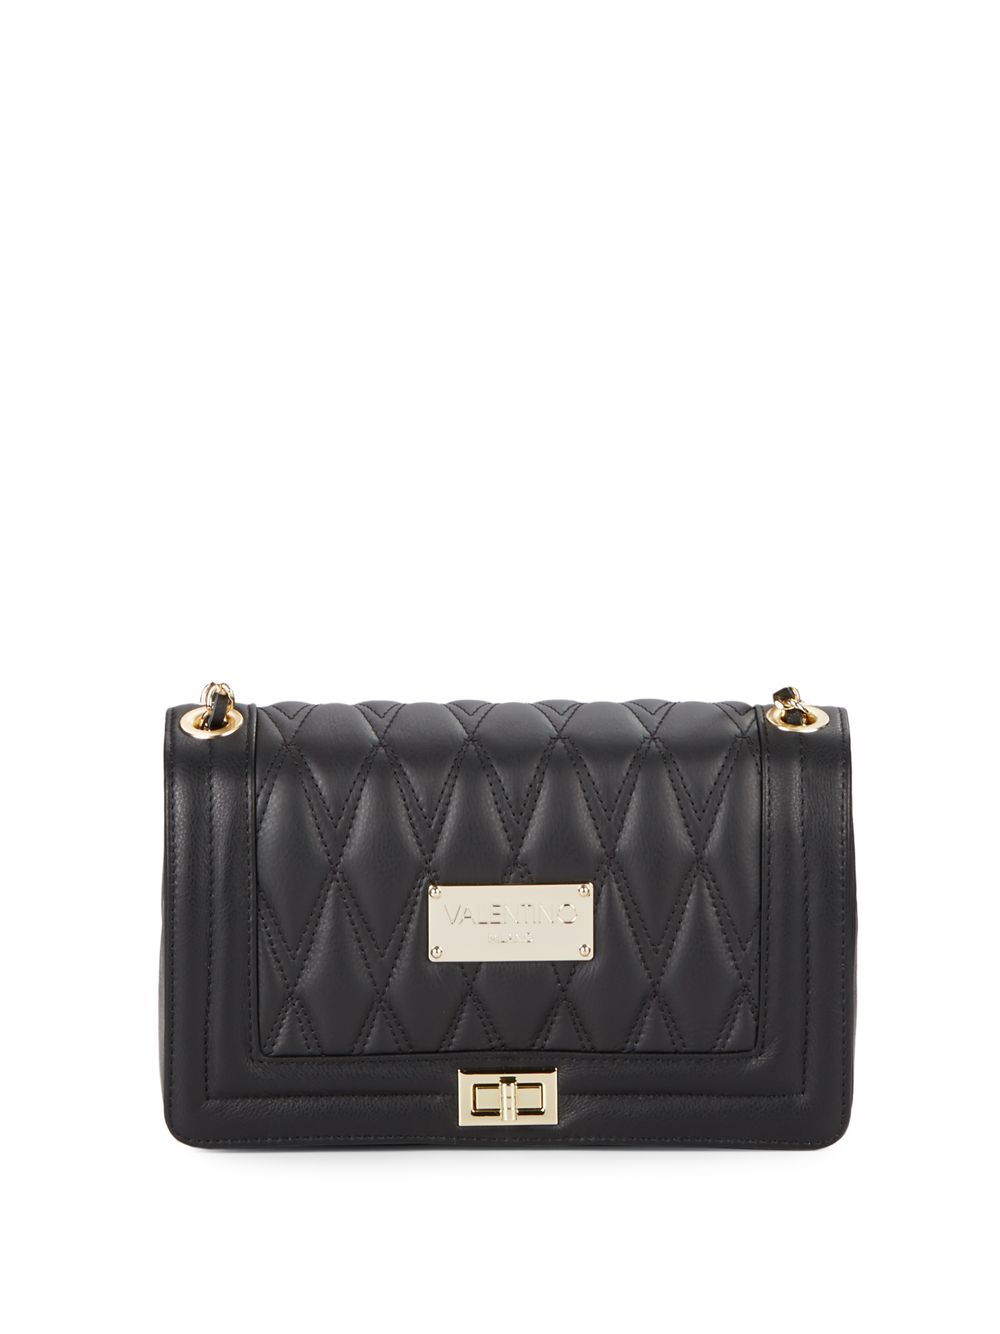 03a1318034 Valentino By Mario Valentino Alice Quilted Leather Shoulder Bag in ...